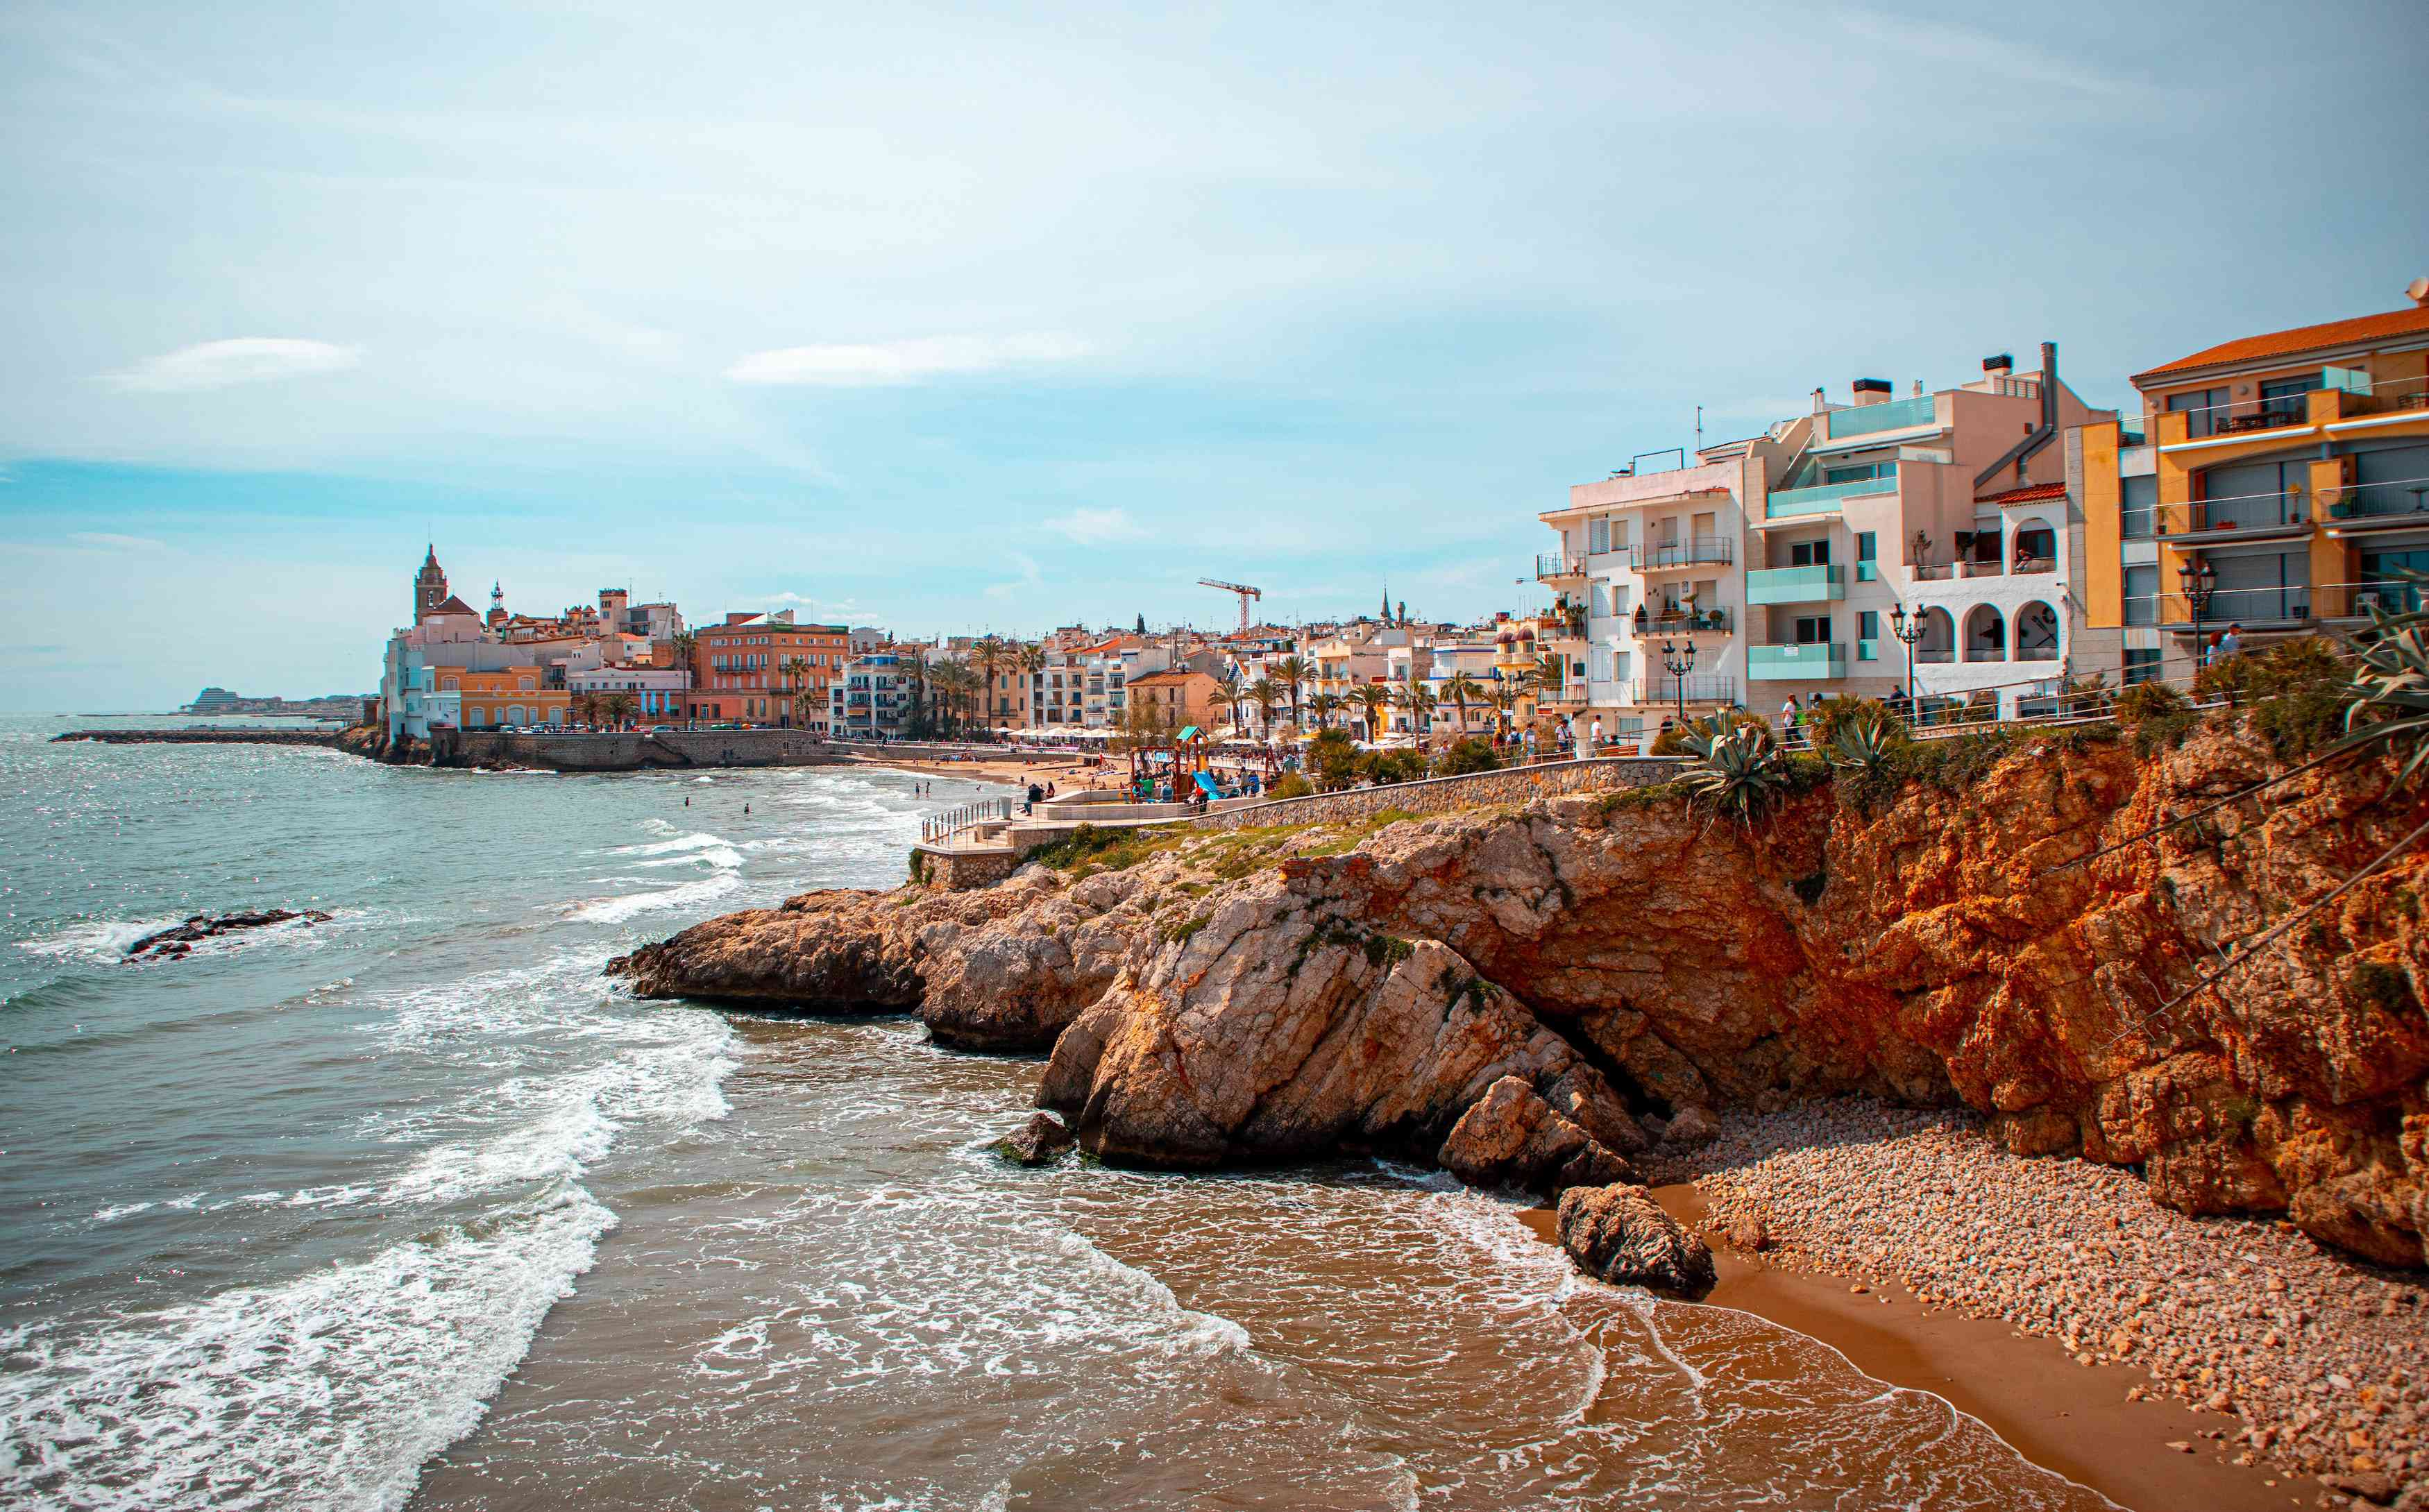 The coast and colorful buildings of Sitges, Spain